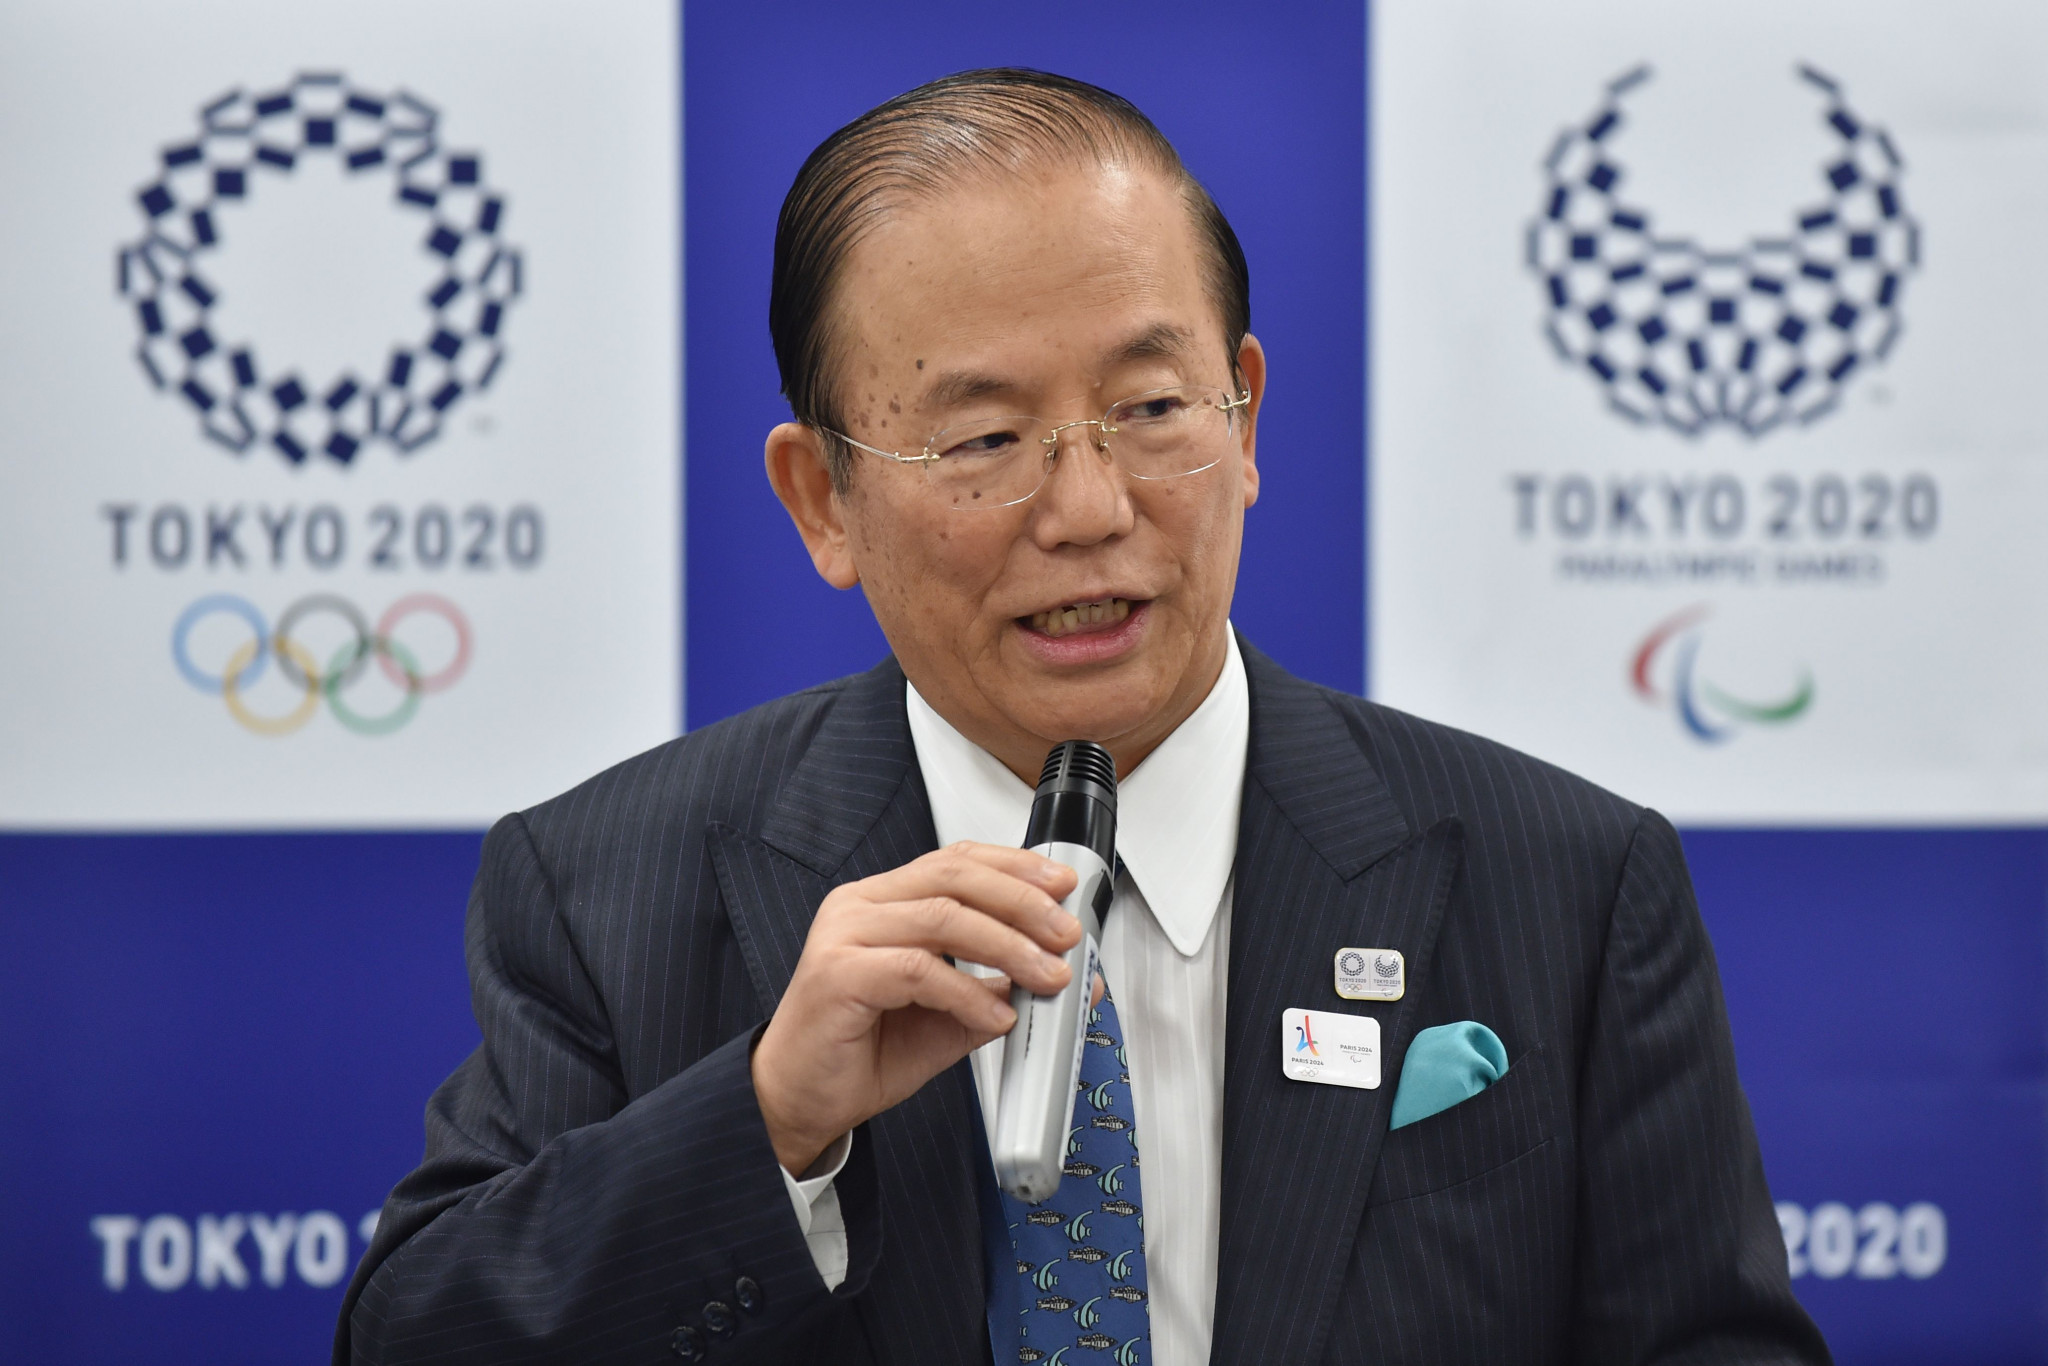 Tokyo 2020 chief executive Toshiro Muto has praised outgoing IPC counterpart Xavier Gonzalez ©Getty Images